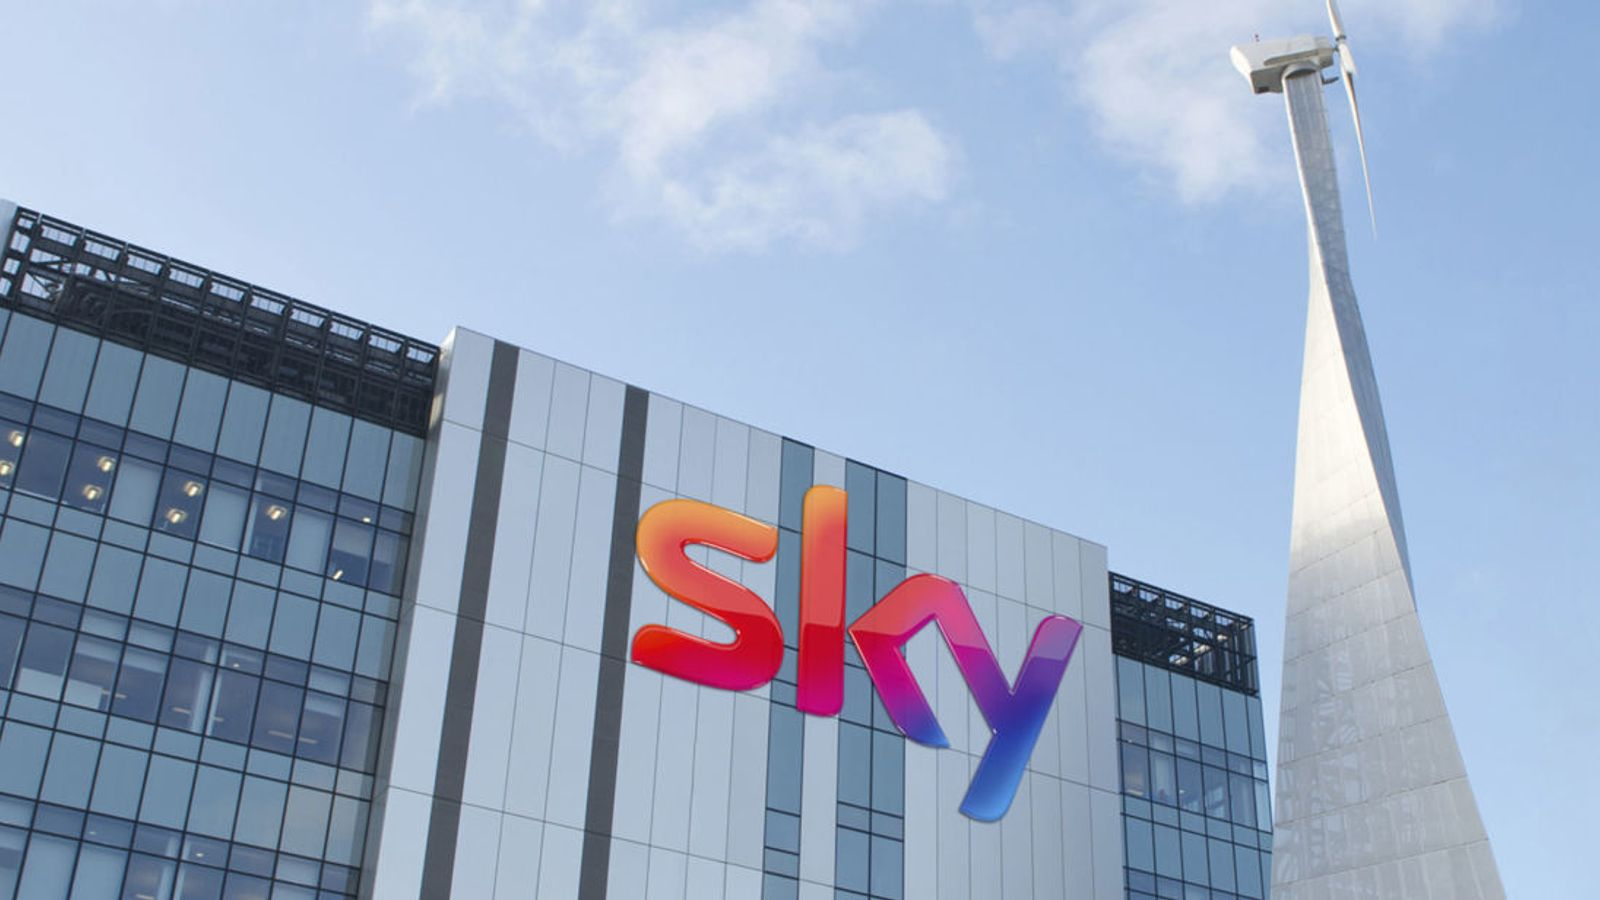 21st Century Fox ups bid for Sky to £14 a share